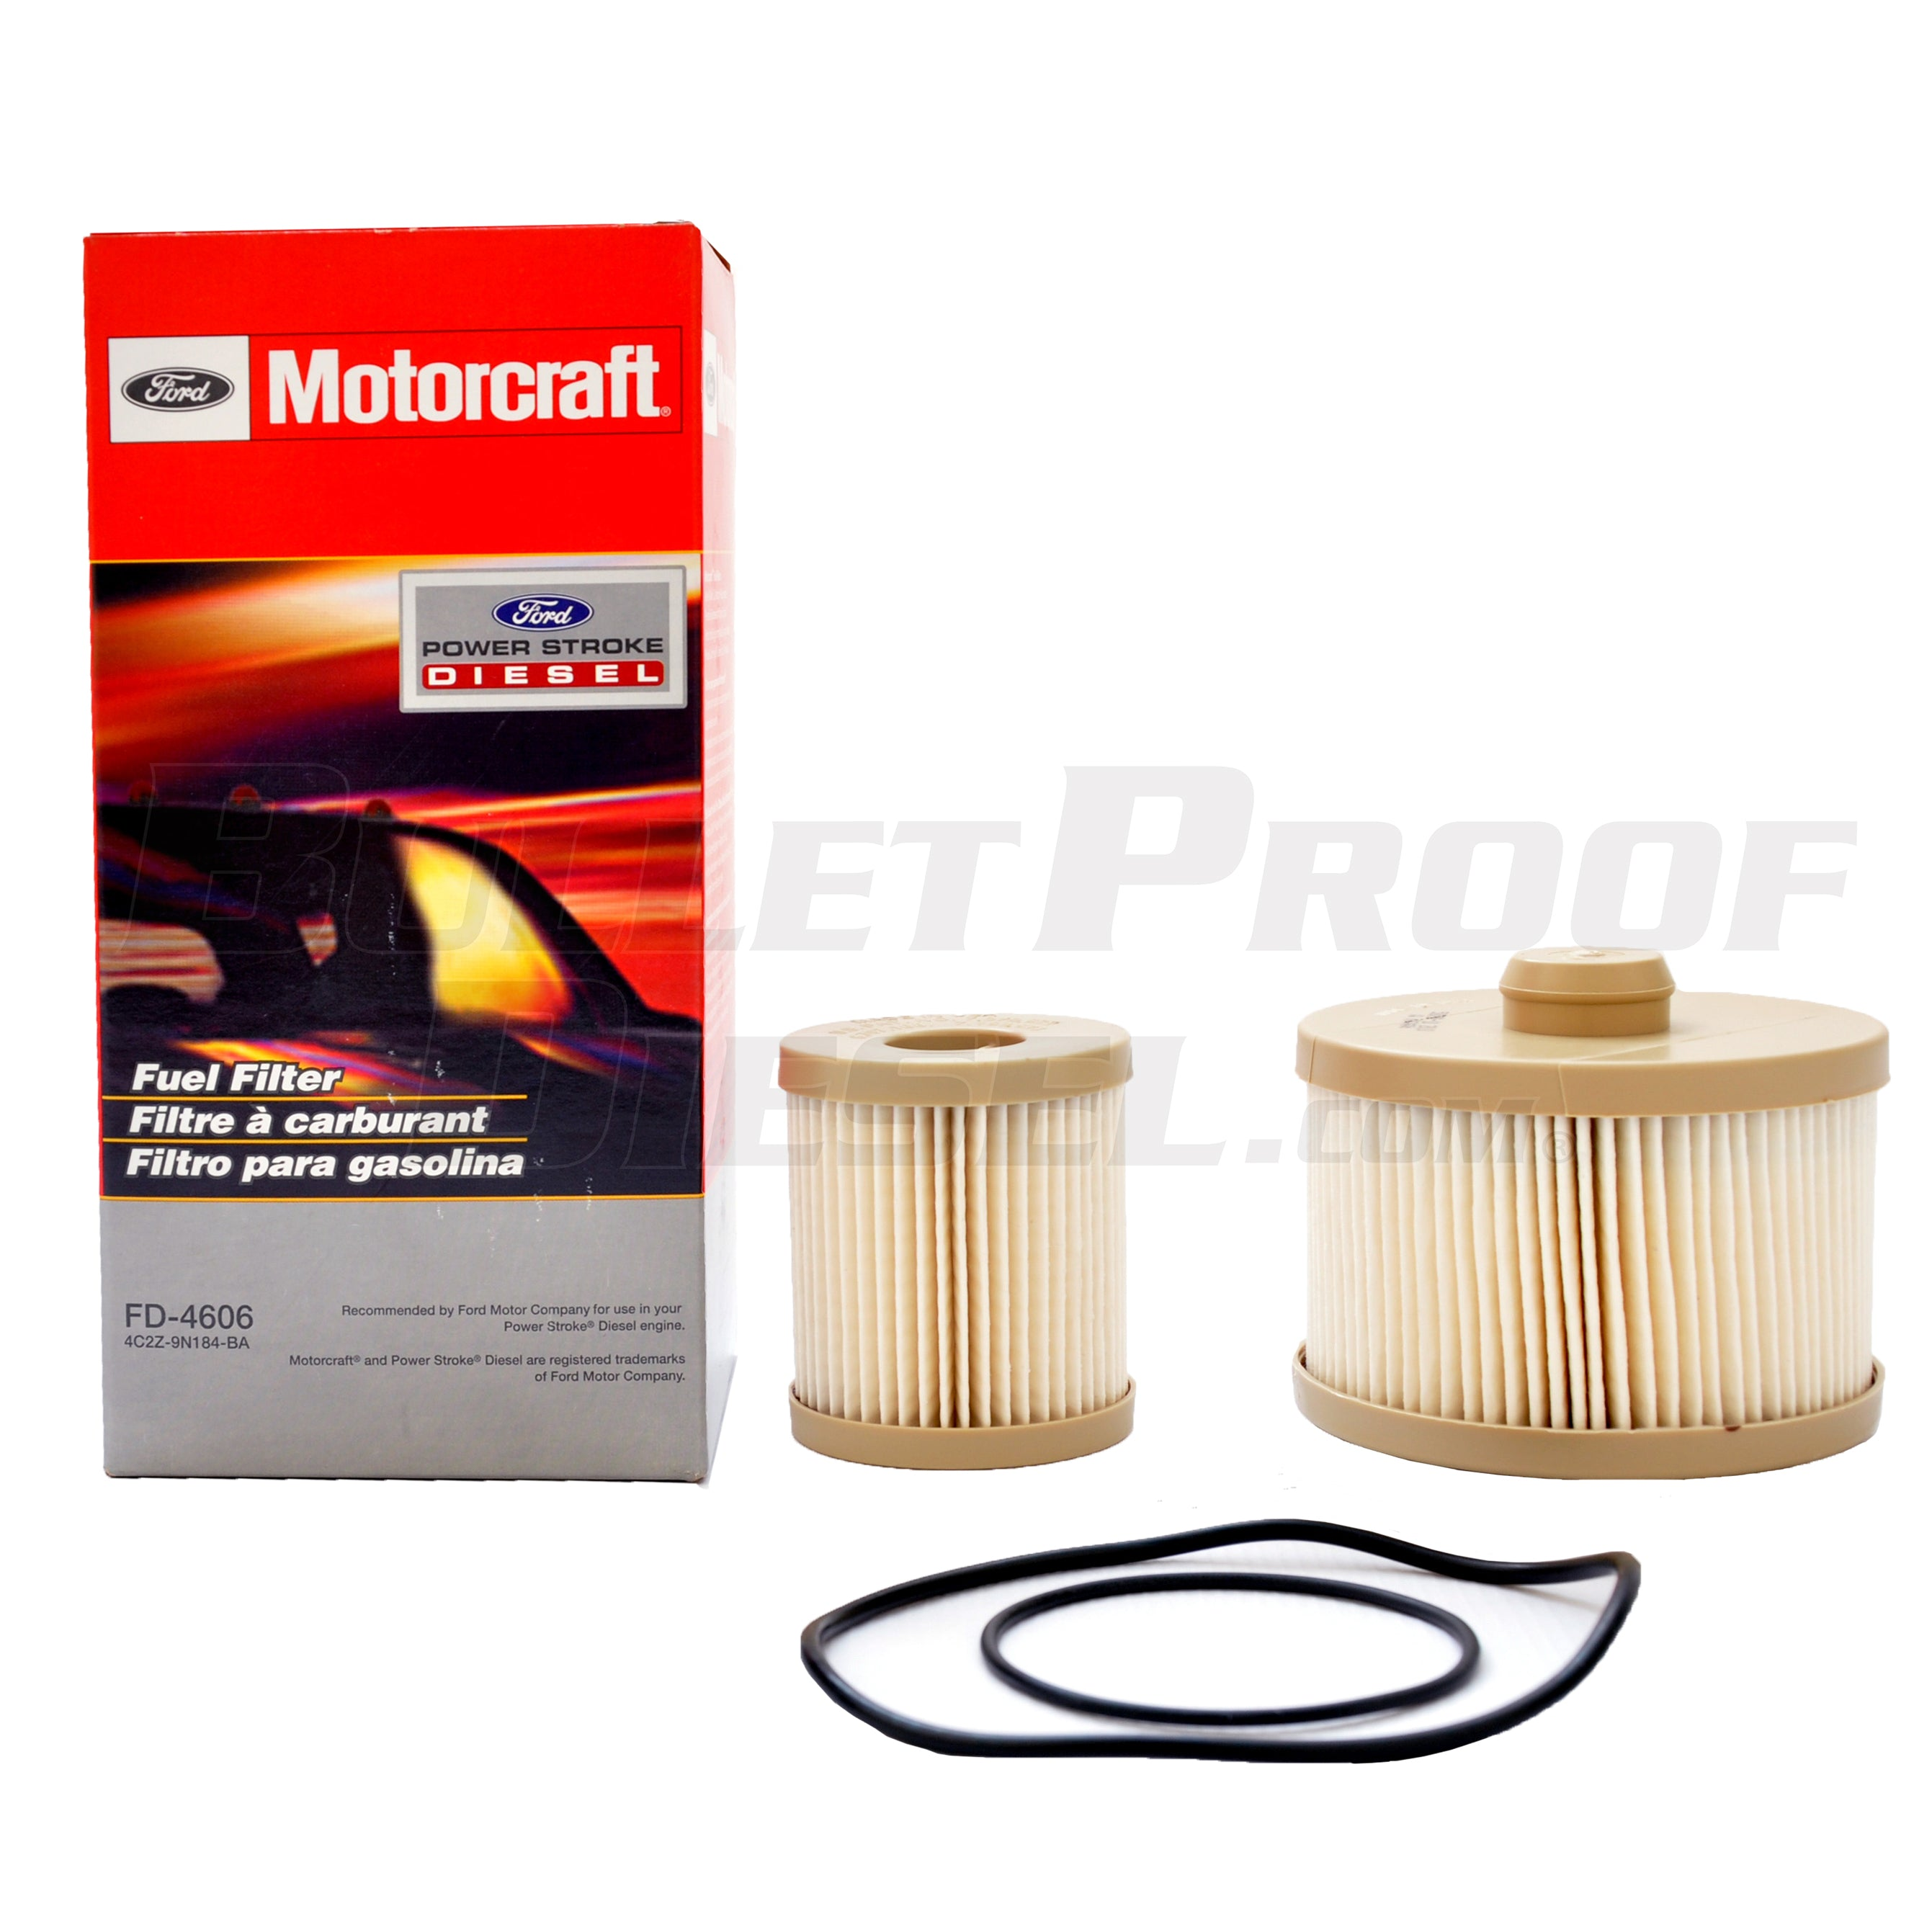 2003-2004 6.0L E-Series, Professional Package - OEM Oil Filter